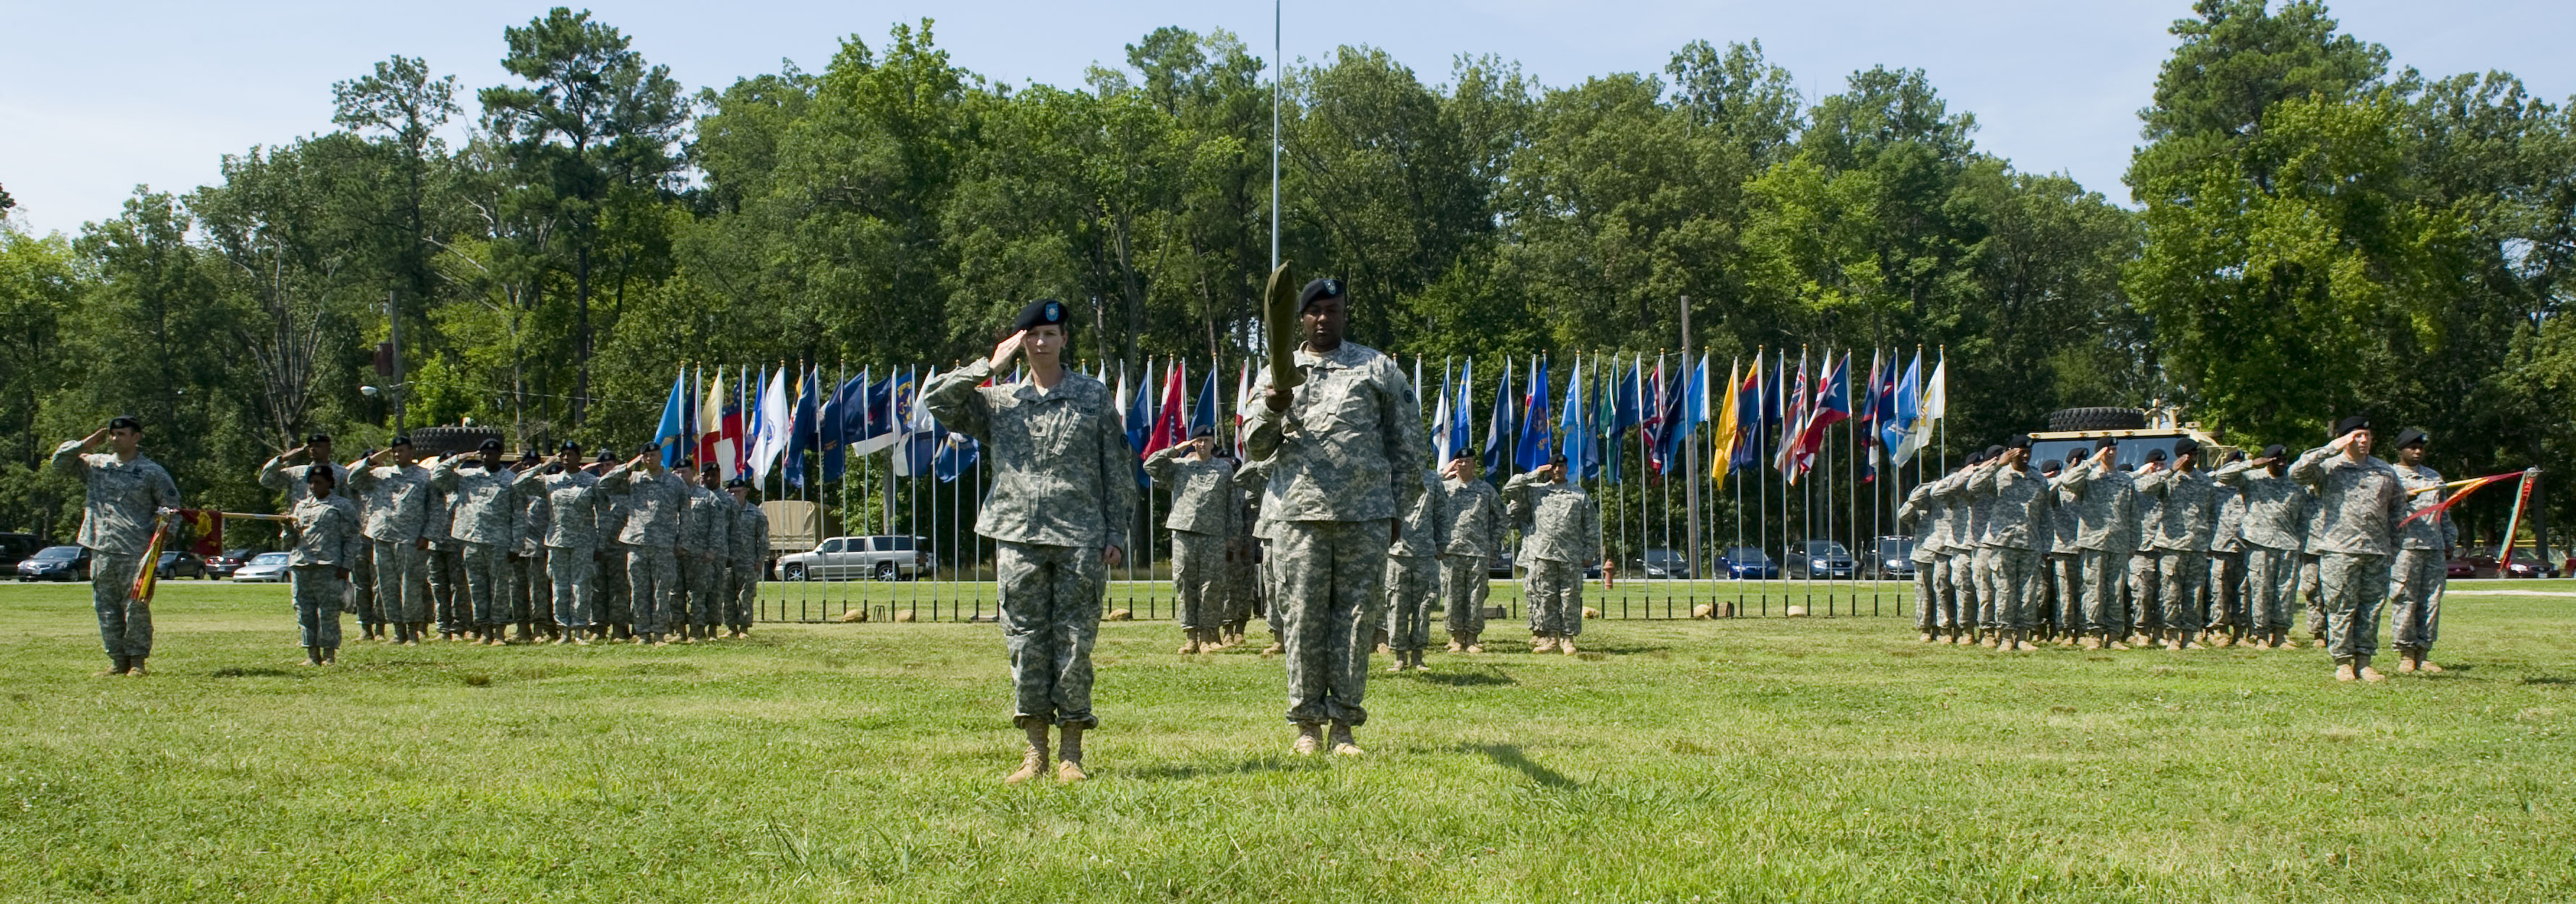 833rd aero squadron - 833rd Trans Bn Relocates From Seattle To Fort Eustis